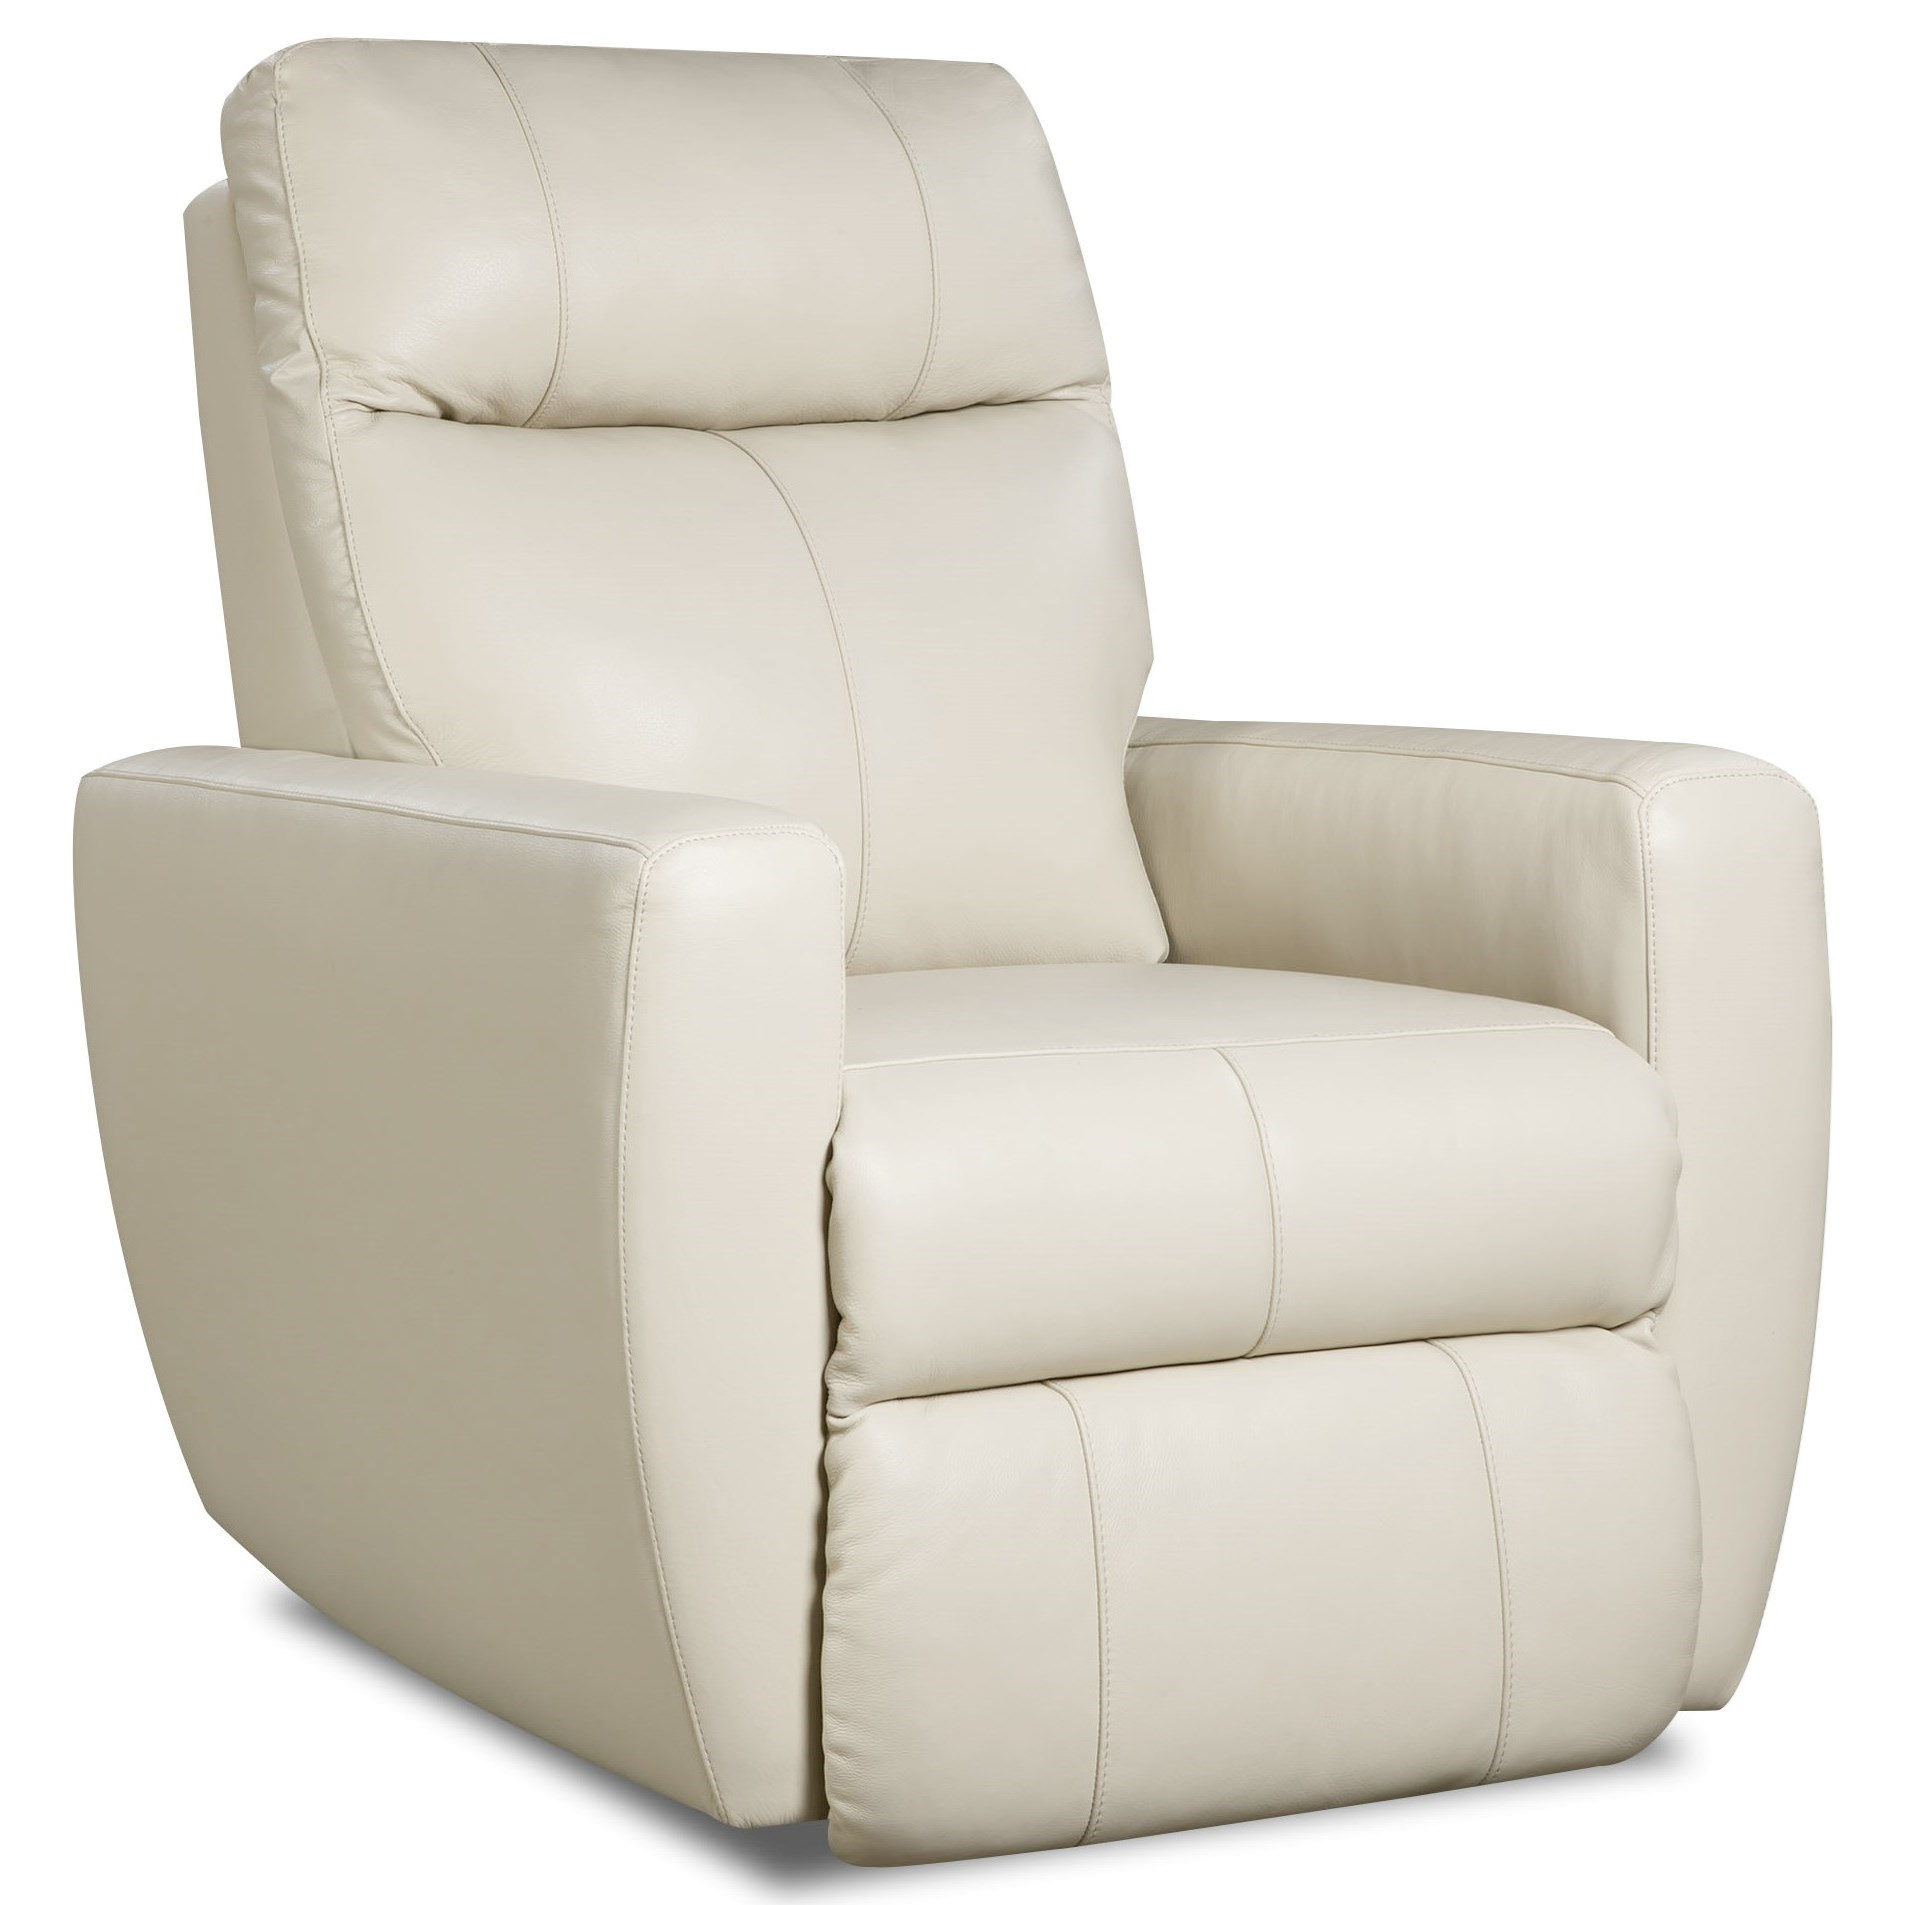 Southern Motion Knock Out Rocker Recliner with Power Headrest - Item Number: 5865